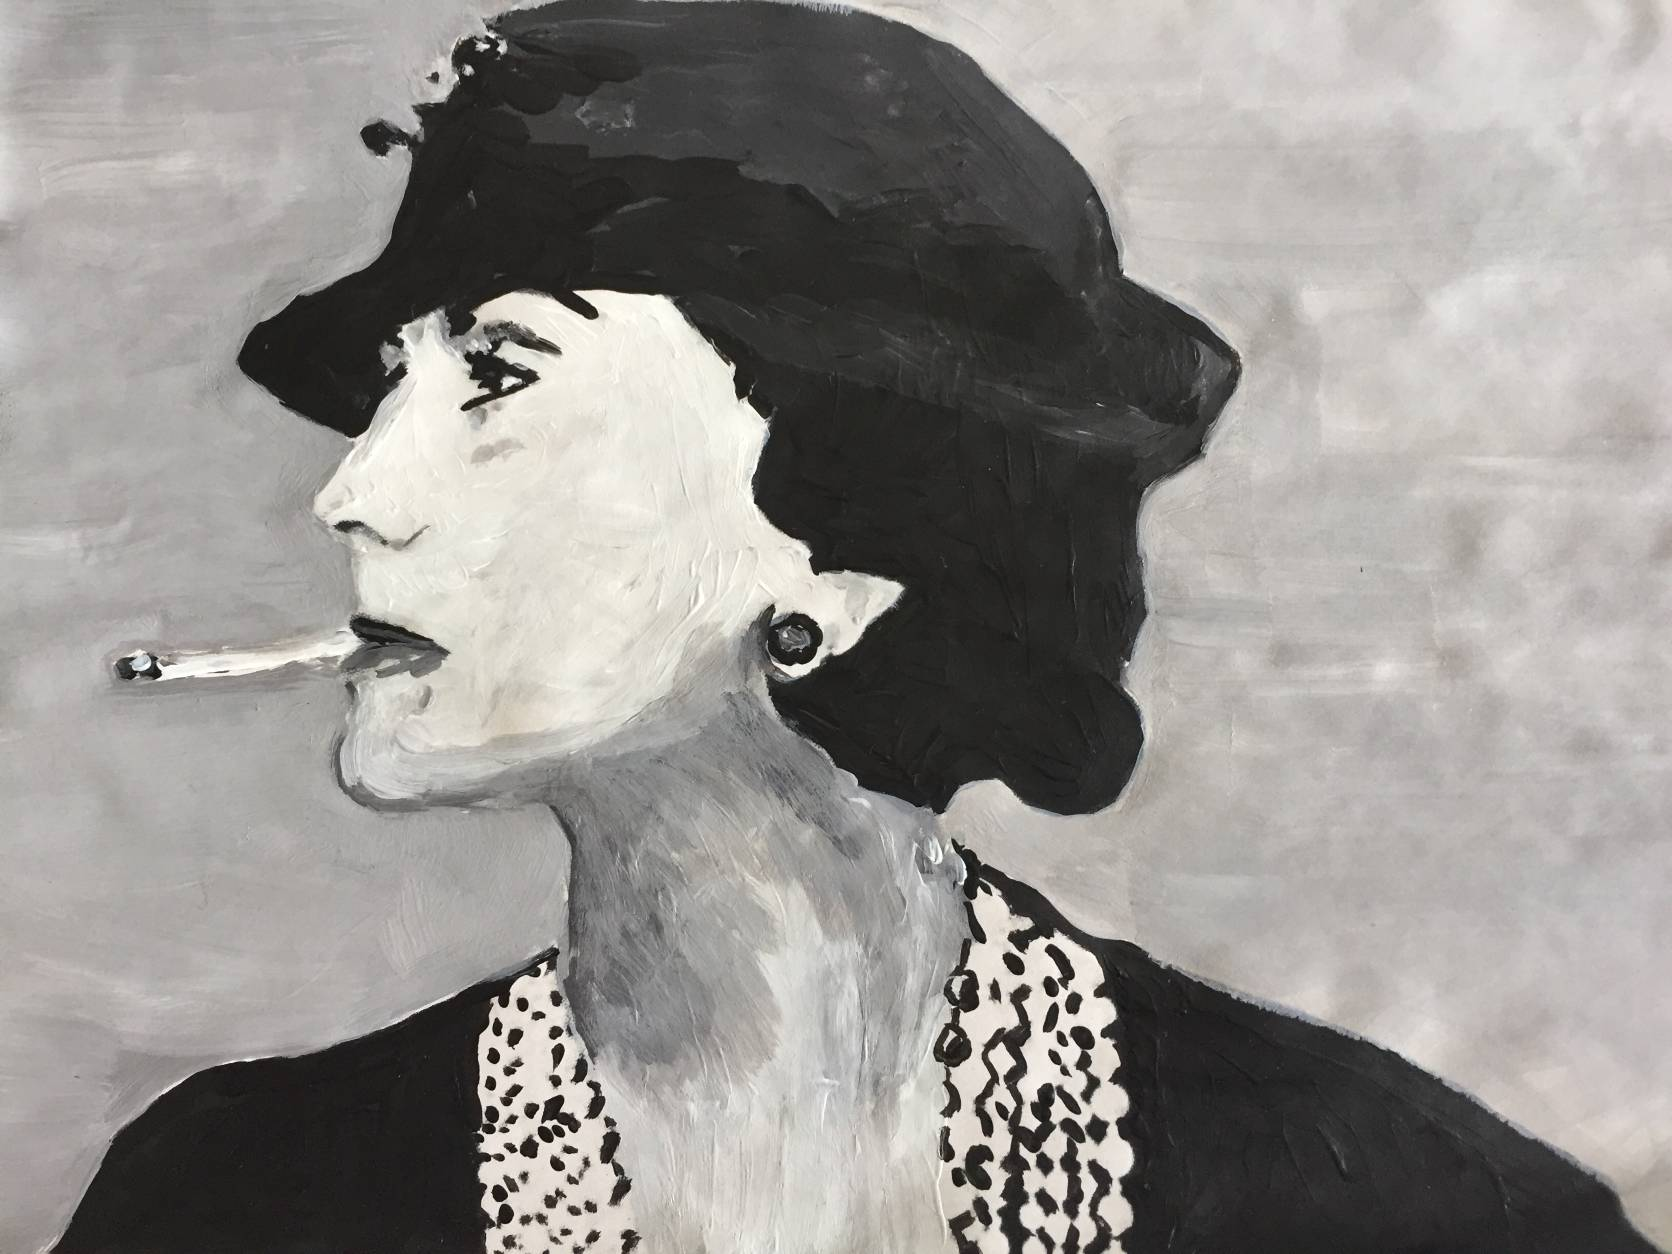 Every Friday Artwork - Hommage an Coco Chanel - 2018